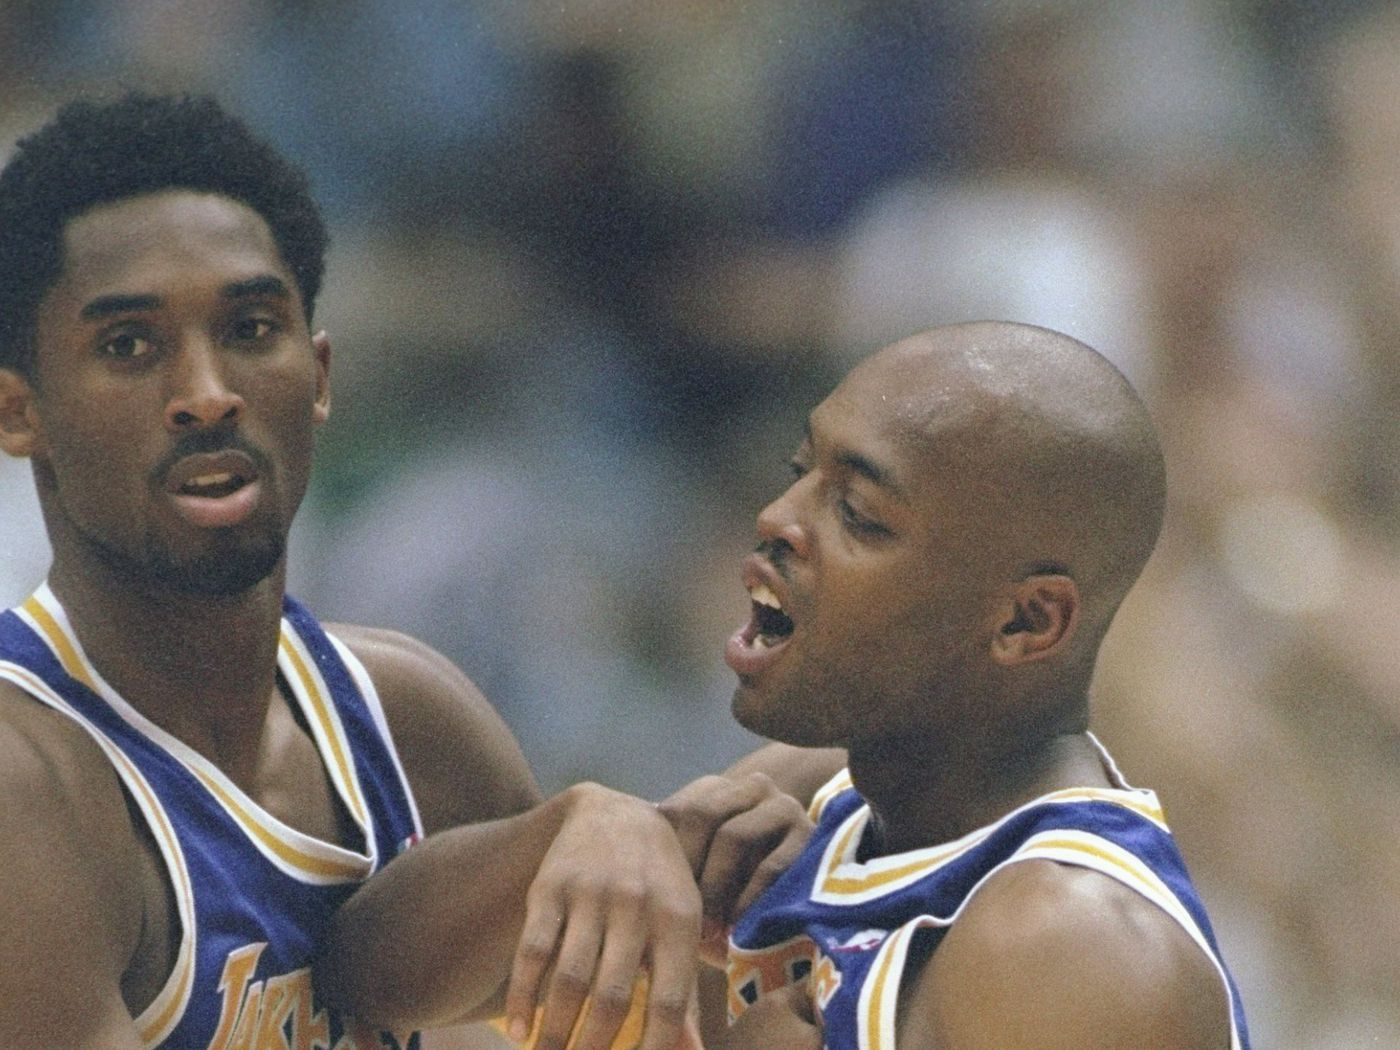 Nick Van Exel says Kobe Bryant's competitiveness made his